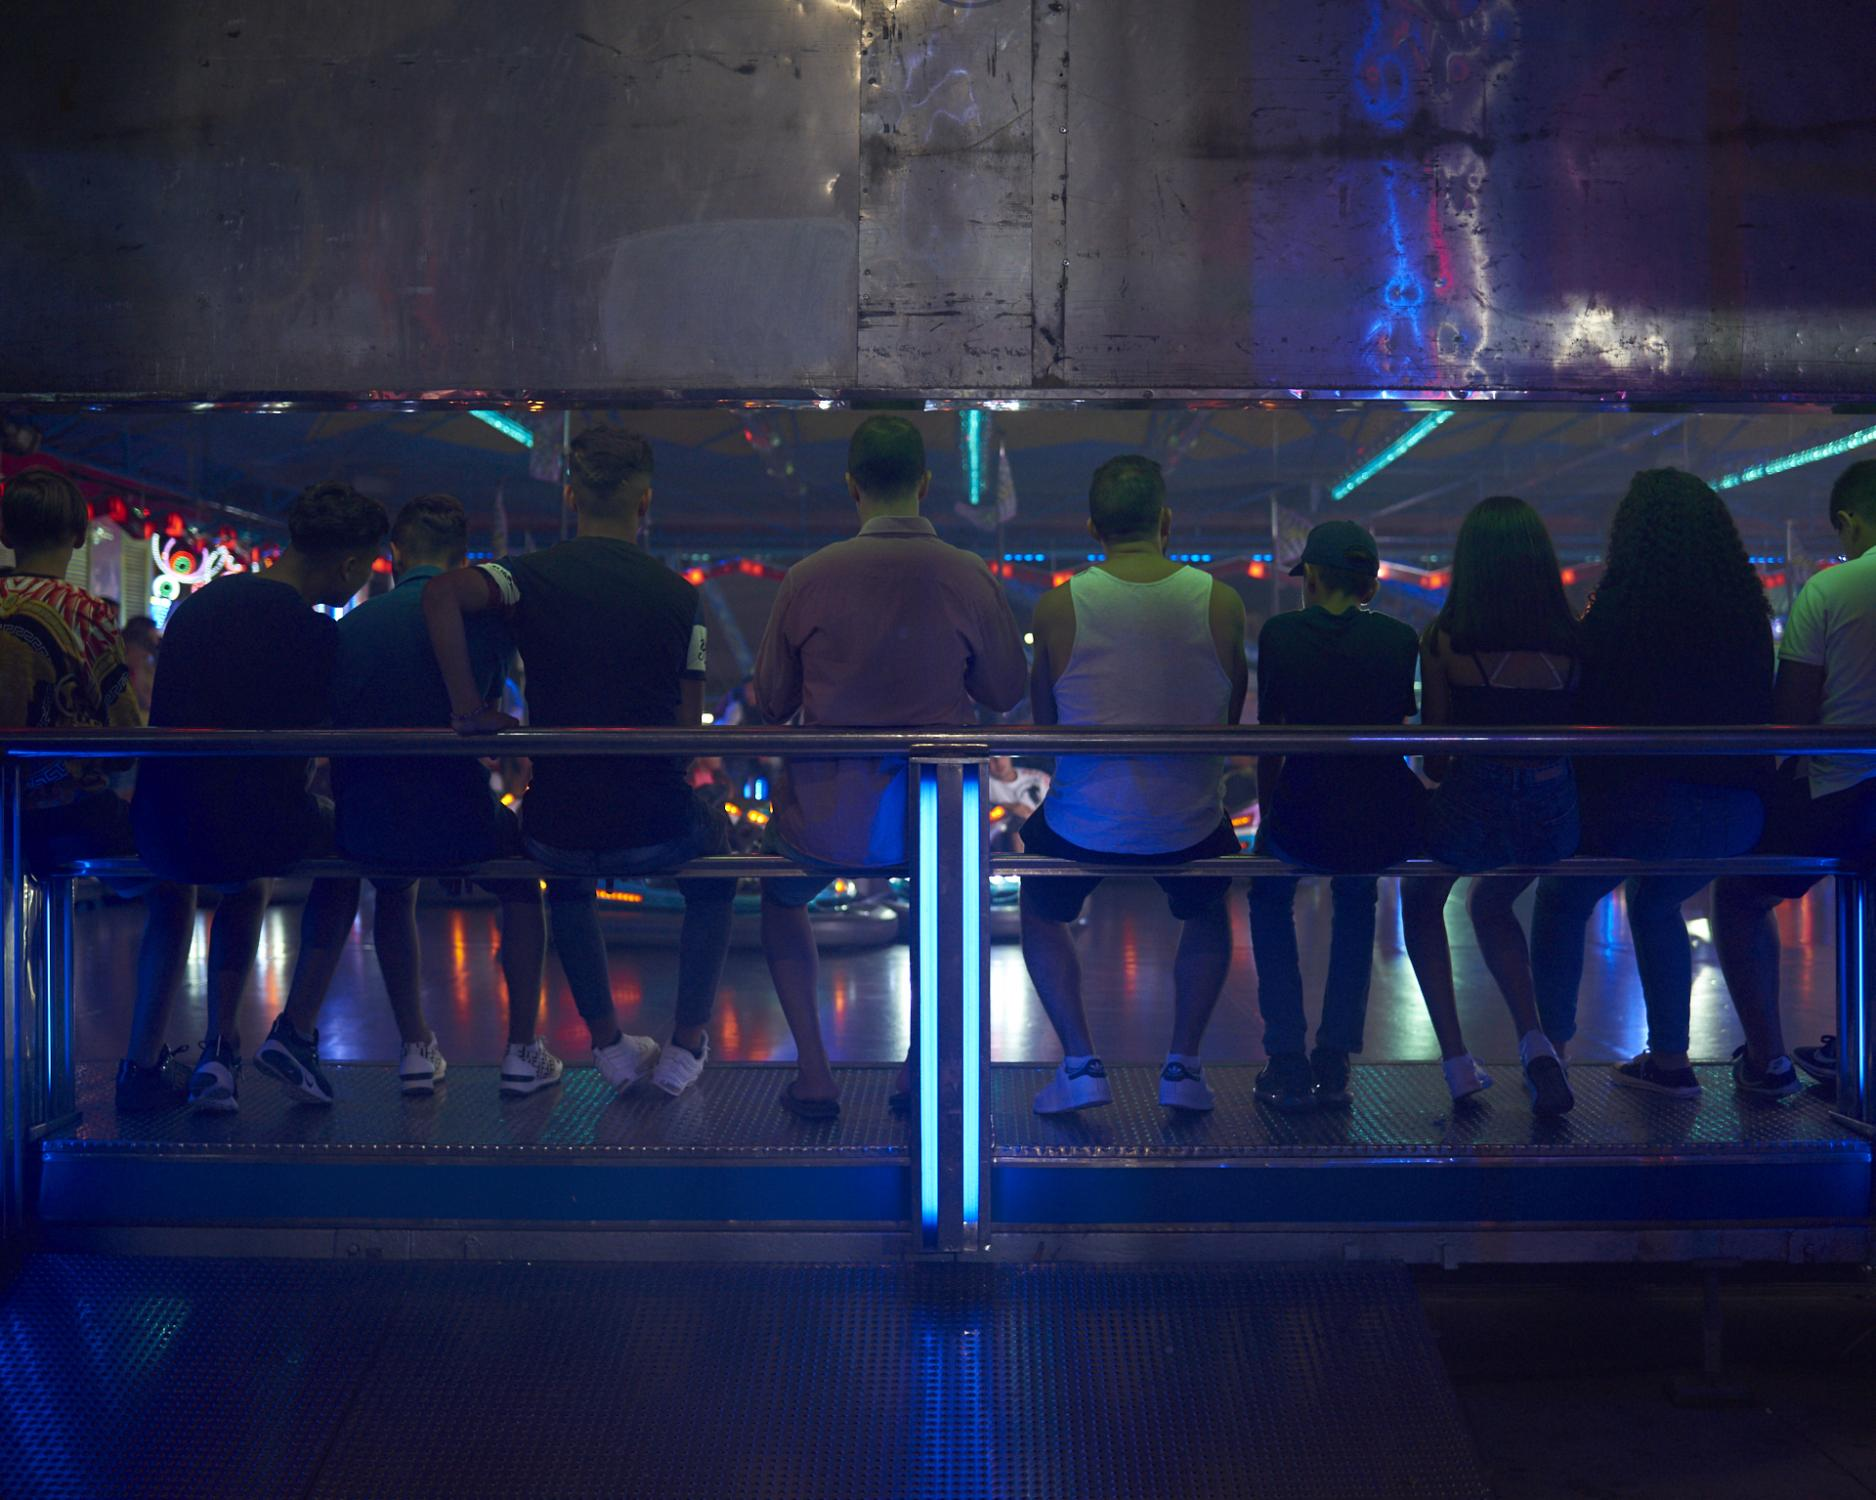 A group of teenagers hangs waiting for their turn on the bumper cars. Ceuta, Spain, 2019.